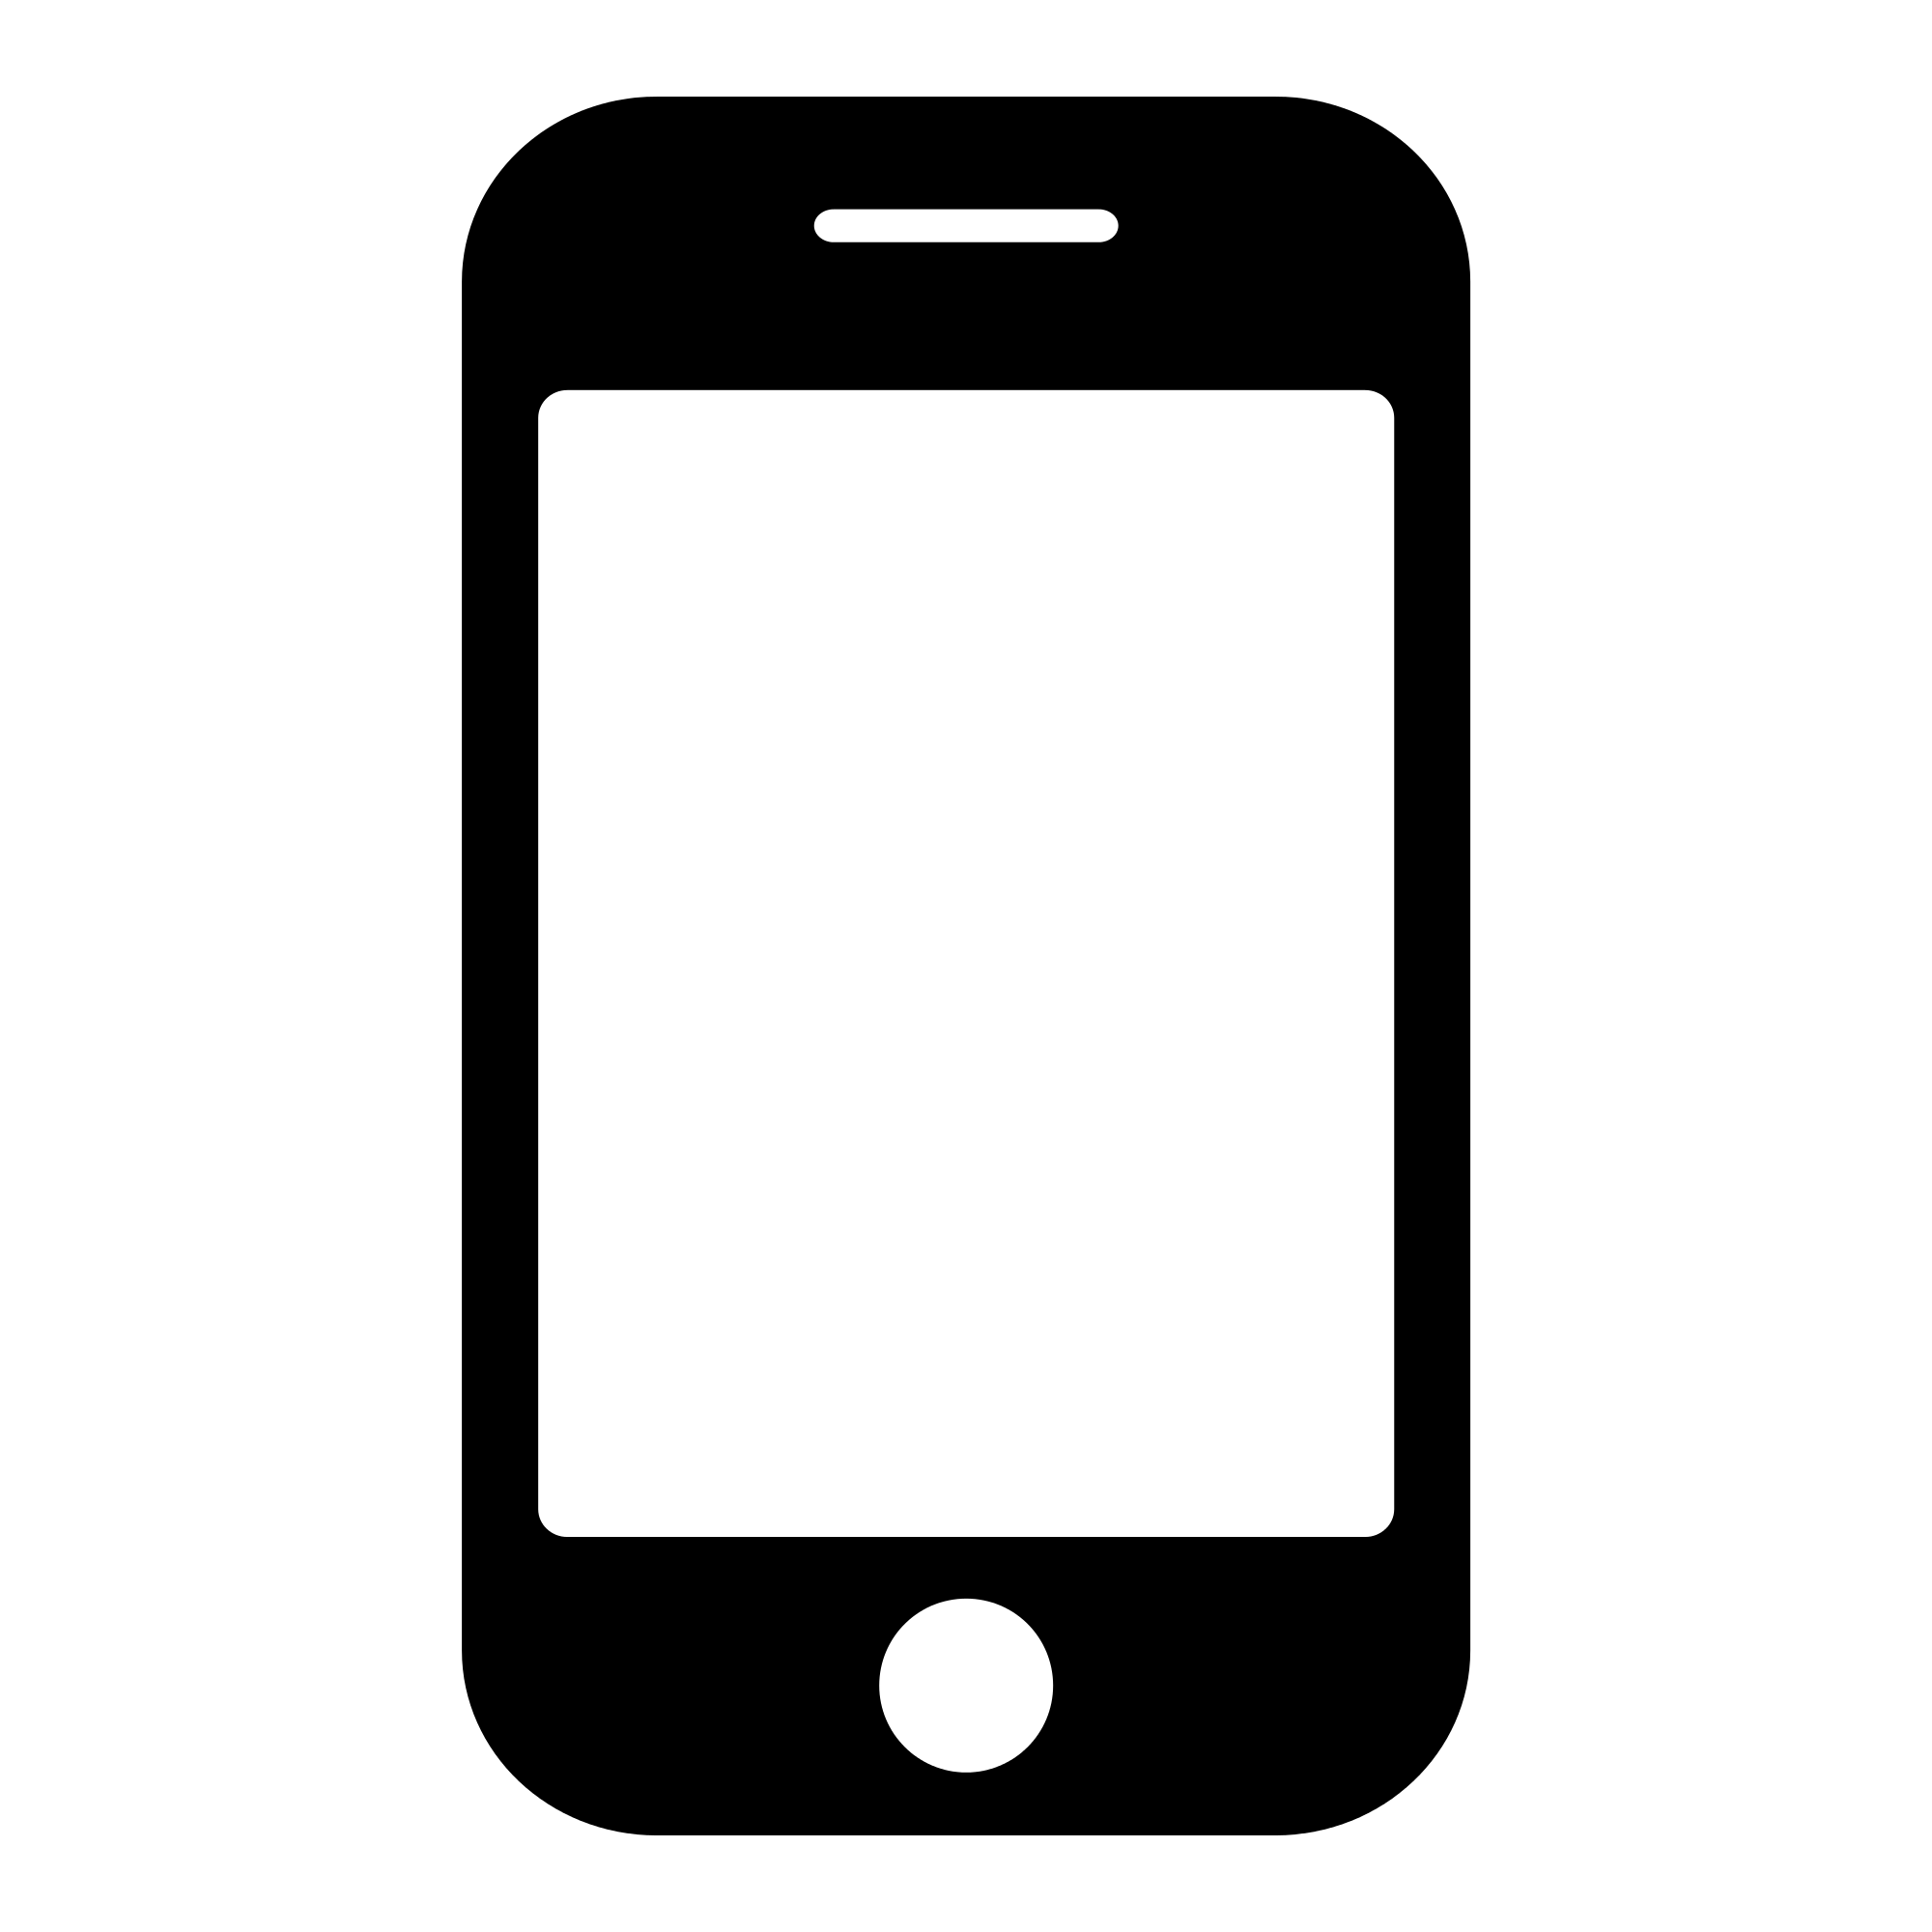 Black Smartphone icon.png